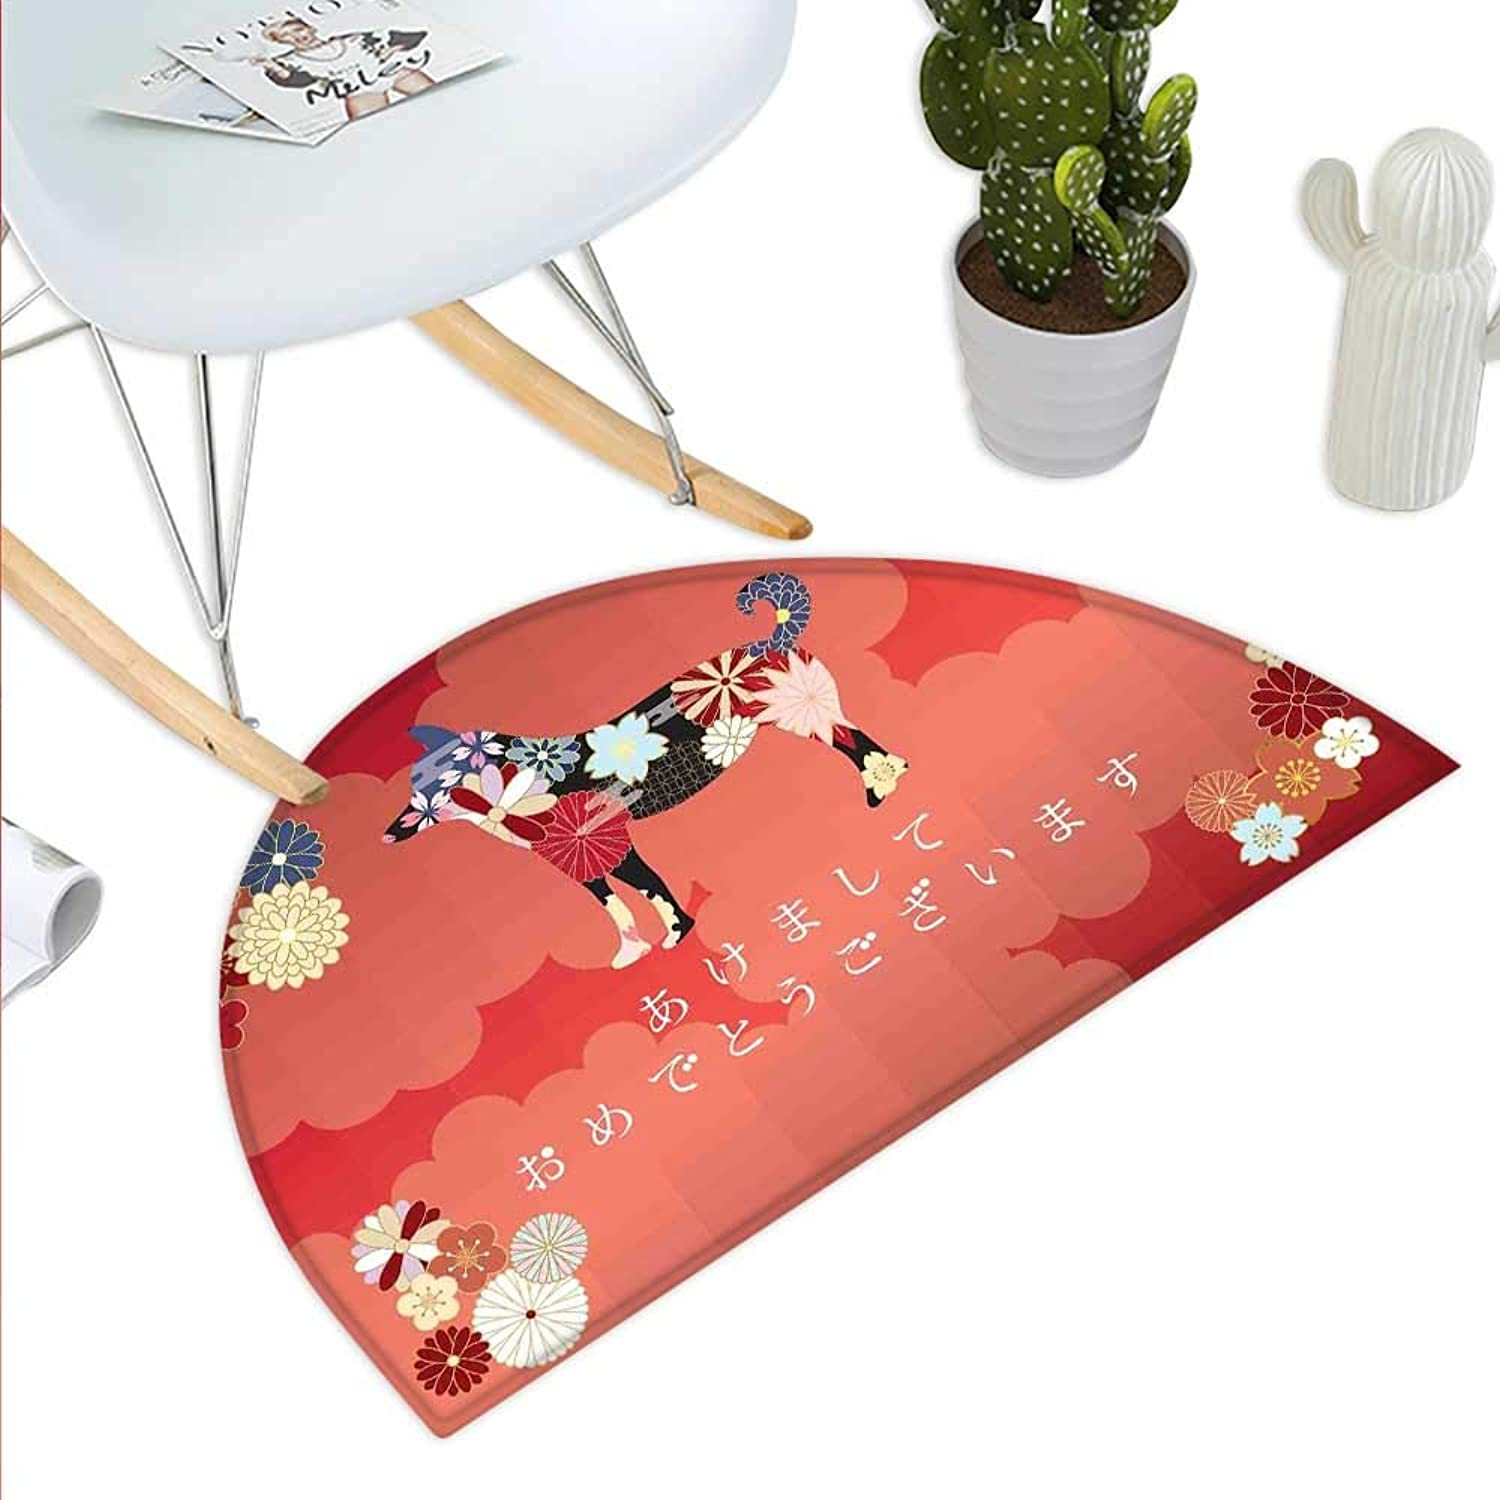 Year of The Dog Semicircle Doormat Japanese Flourishing Petals with Canine Silhouette on Cloudy Background Halfmoon doormats H 39.3  xD 59  Multicolor